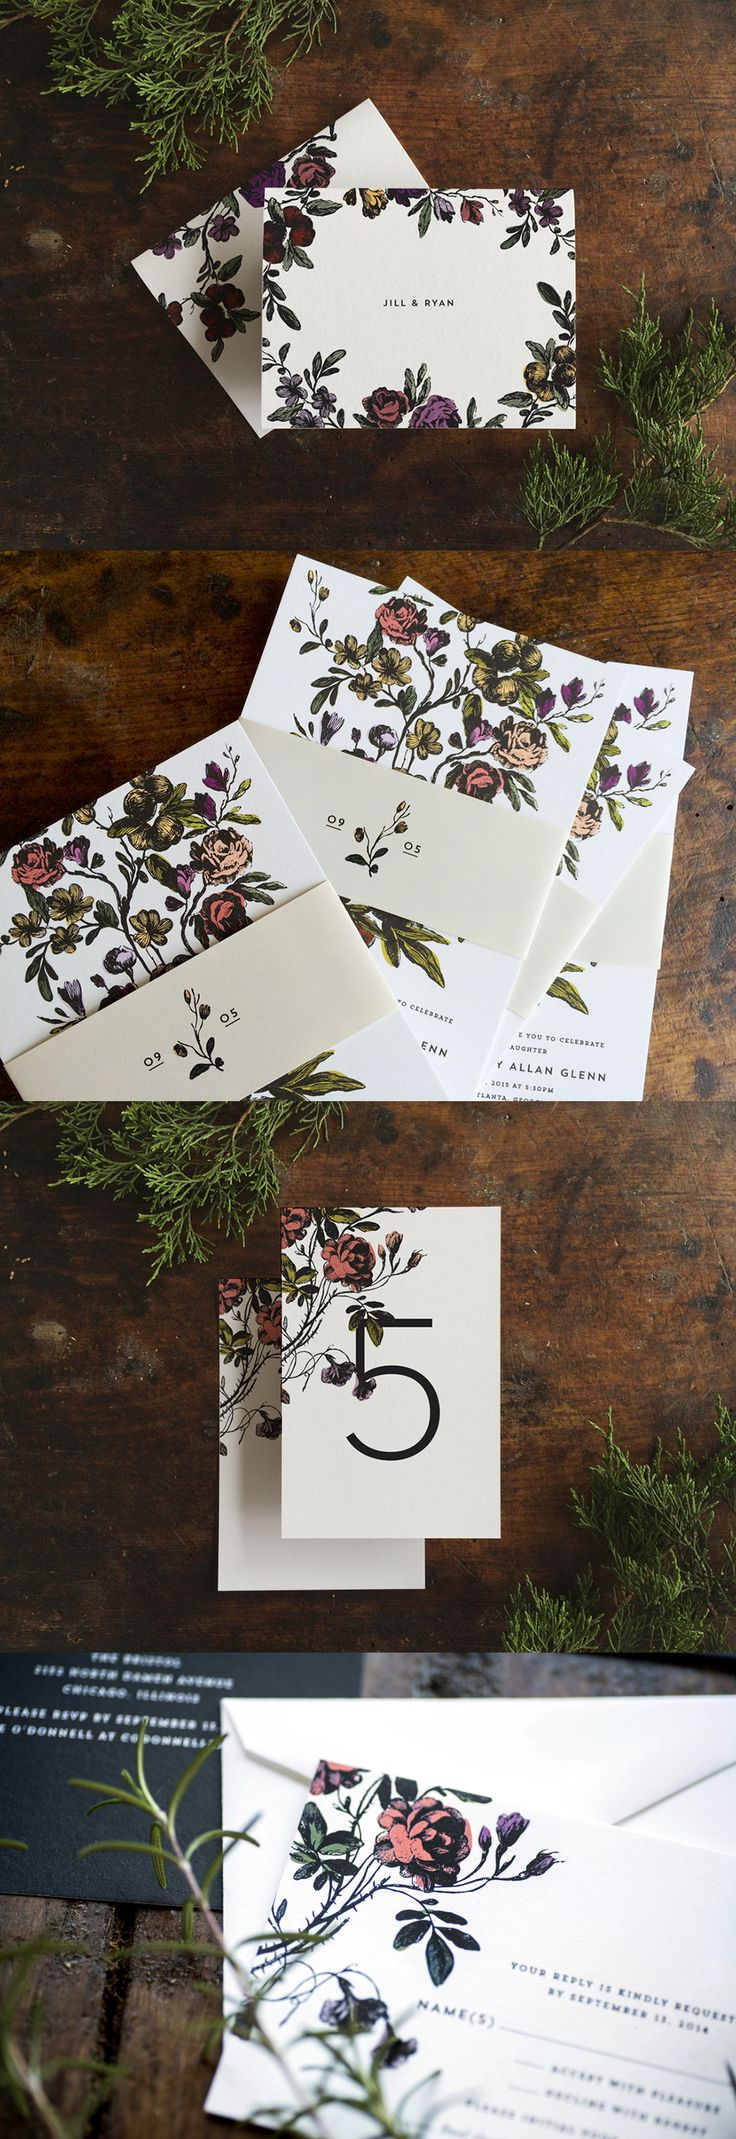 This suite of wedding invitations uses modern typography and gives a playful nod to vintage botanical illustration.  The colors can be customized to your tastes, and you can also choose between foil, letterpress, or flat printing.